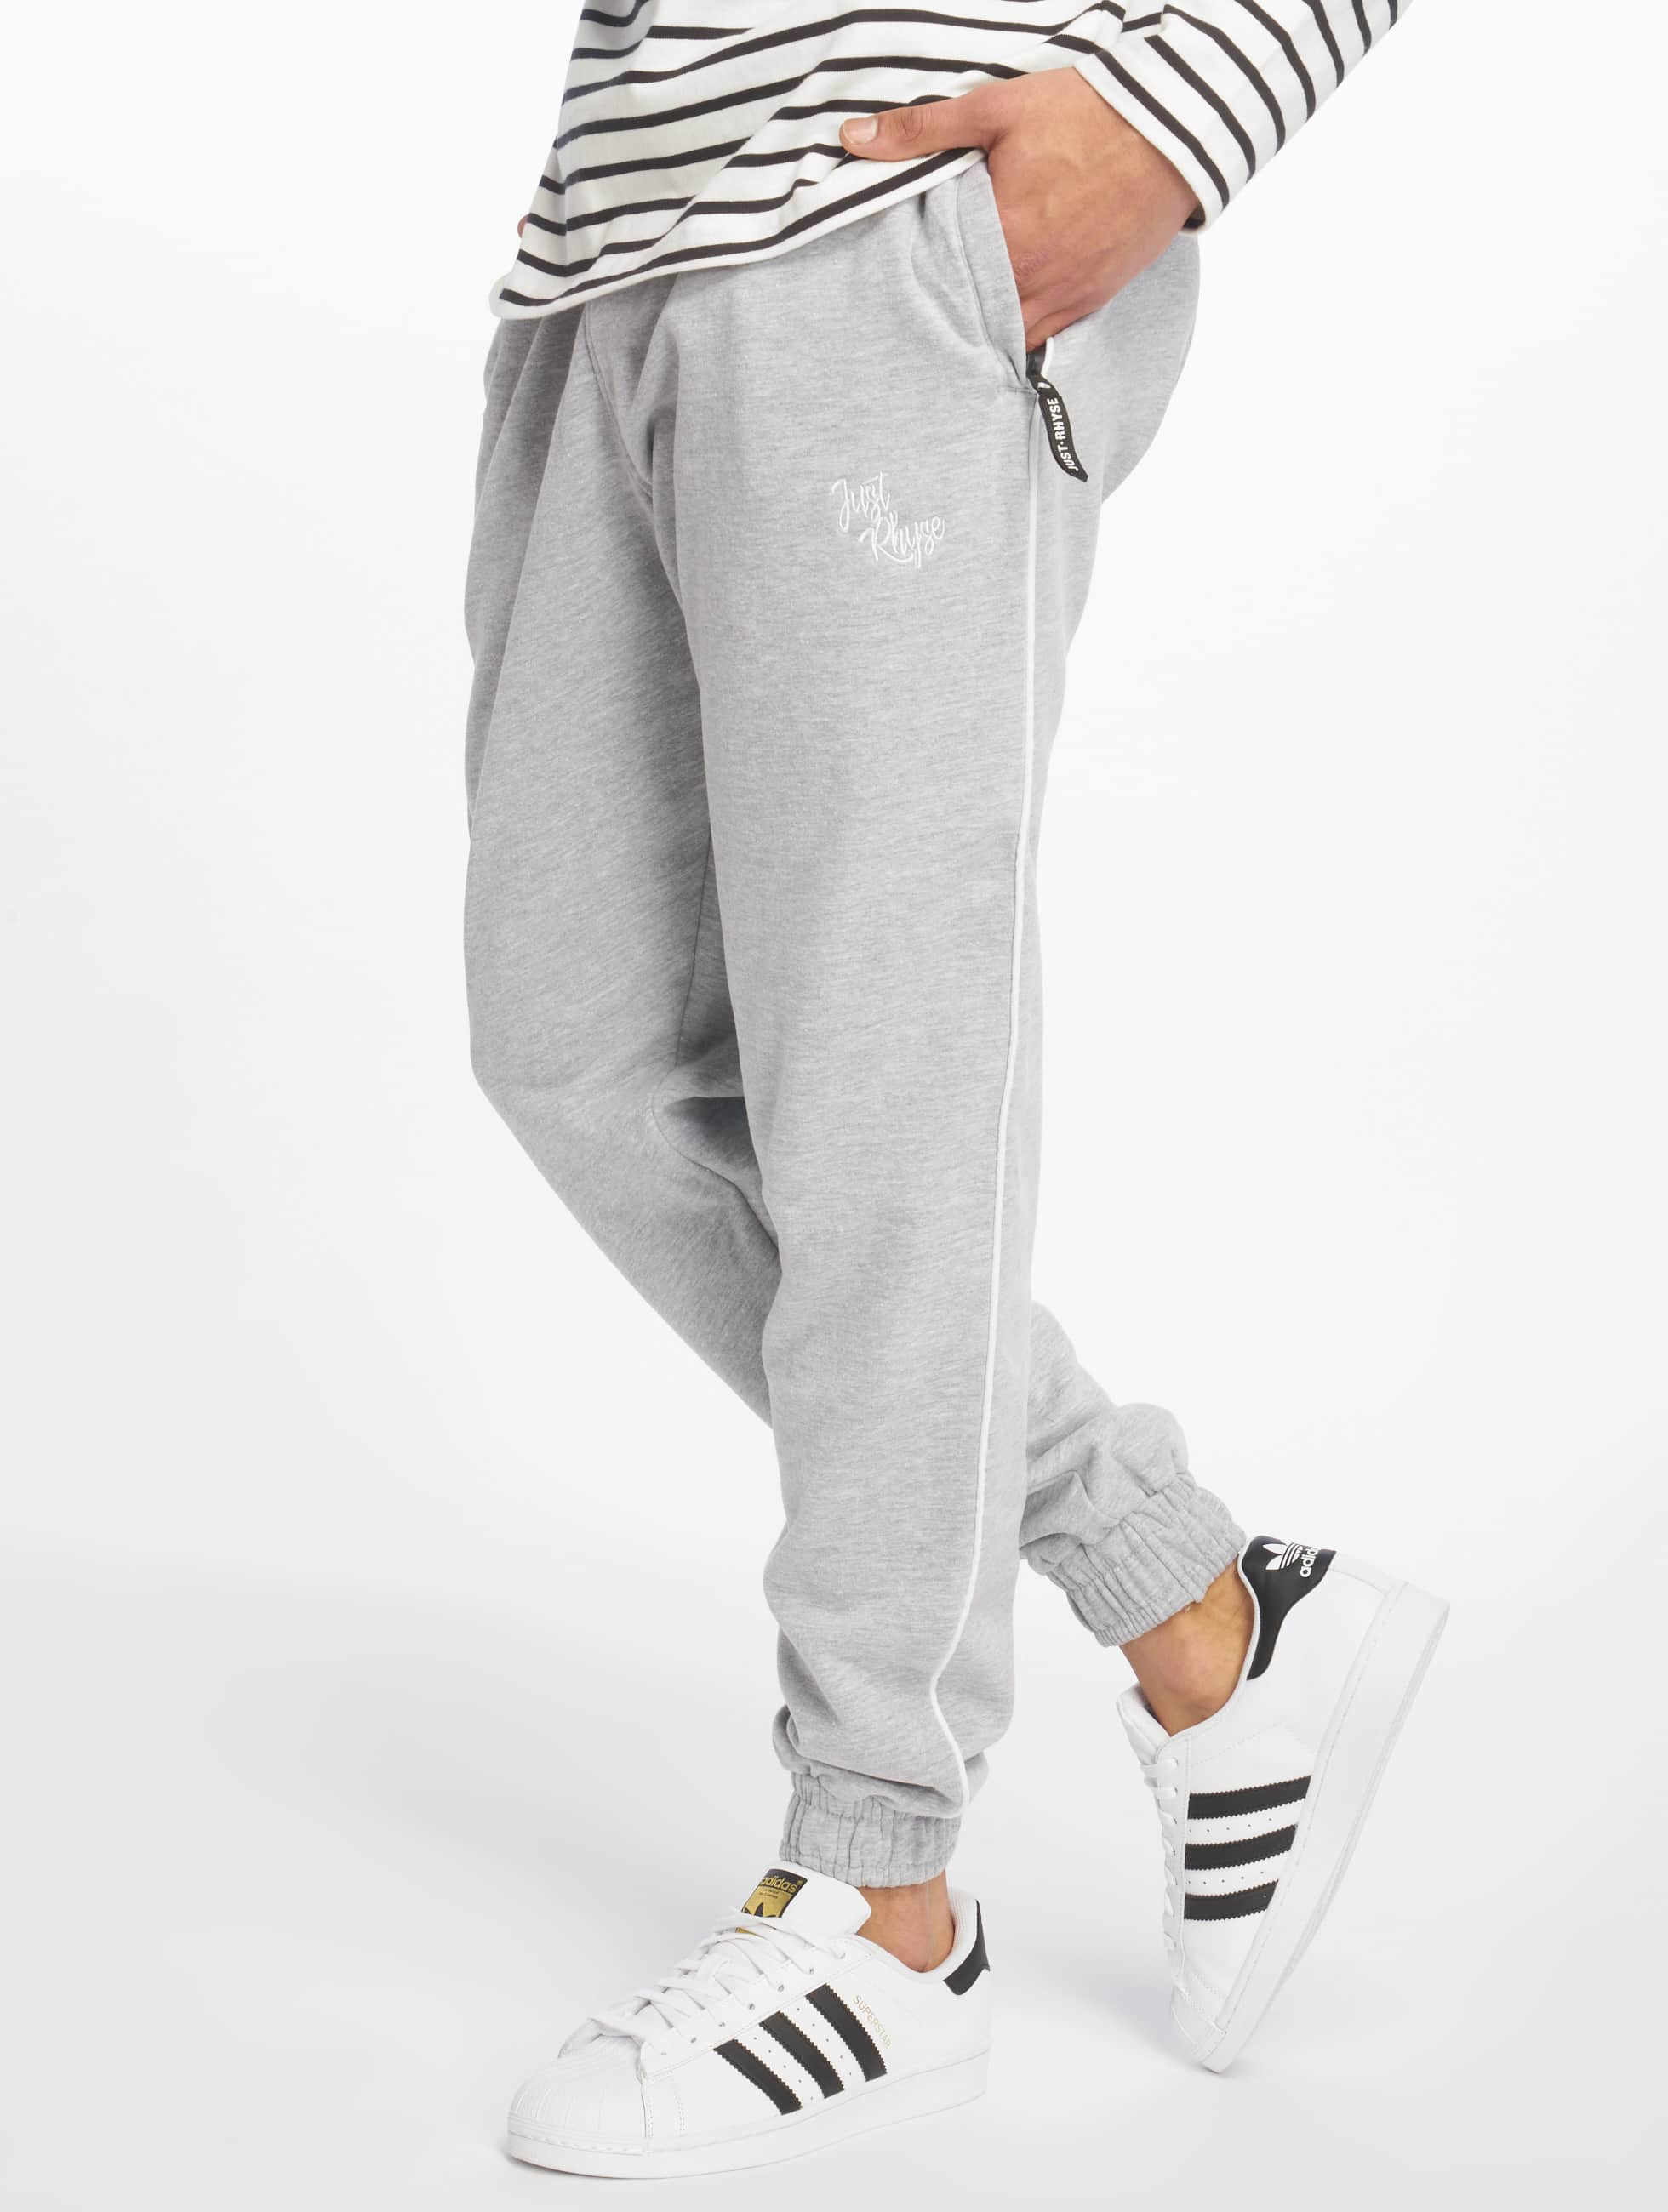 Just Rhyse / Sweat Pant Lake City in grey XL